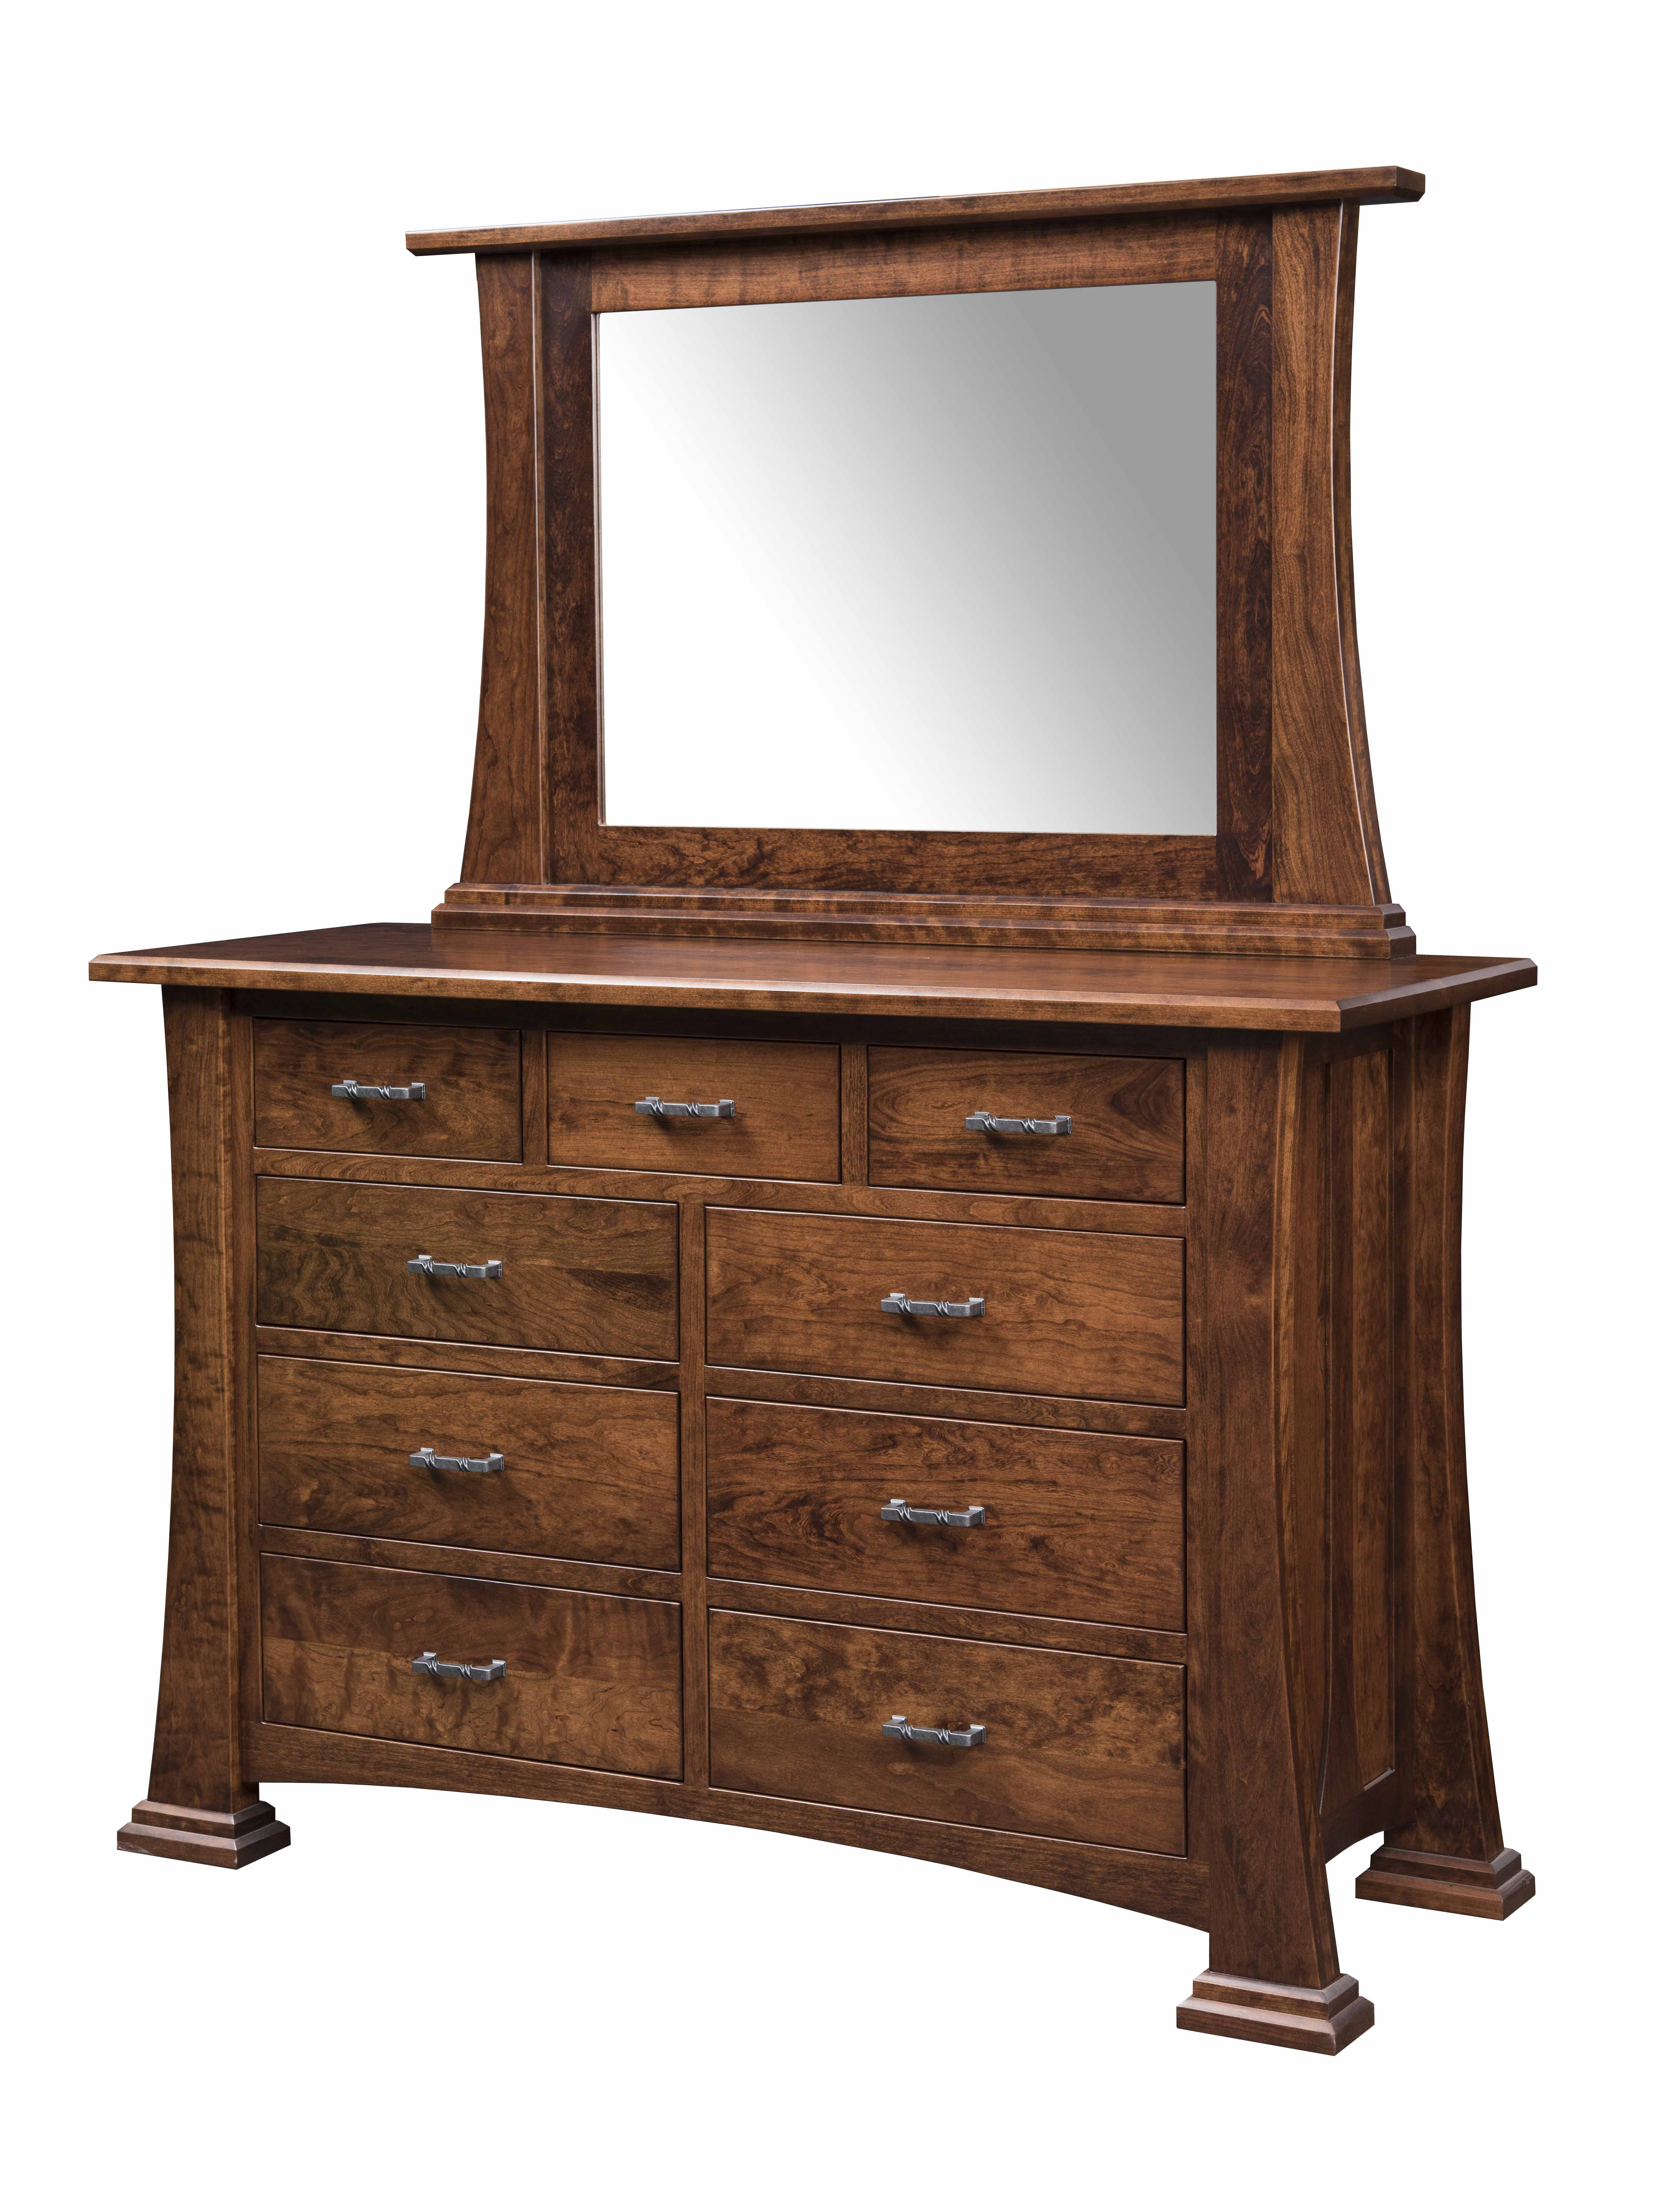 Caledonia Double Mule Dresser and Mirror